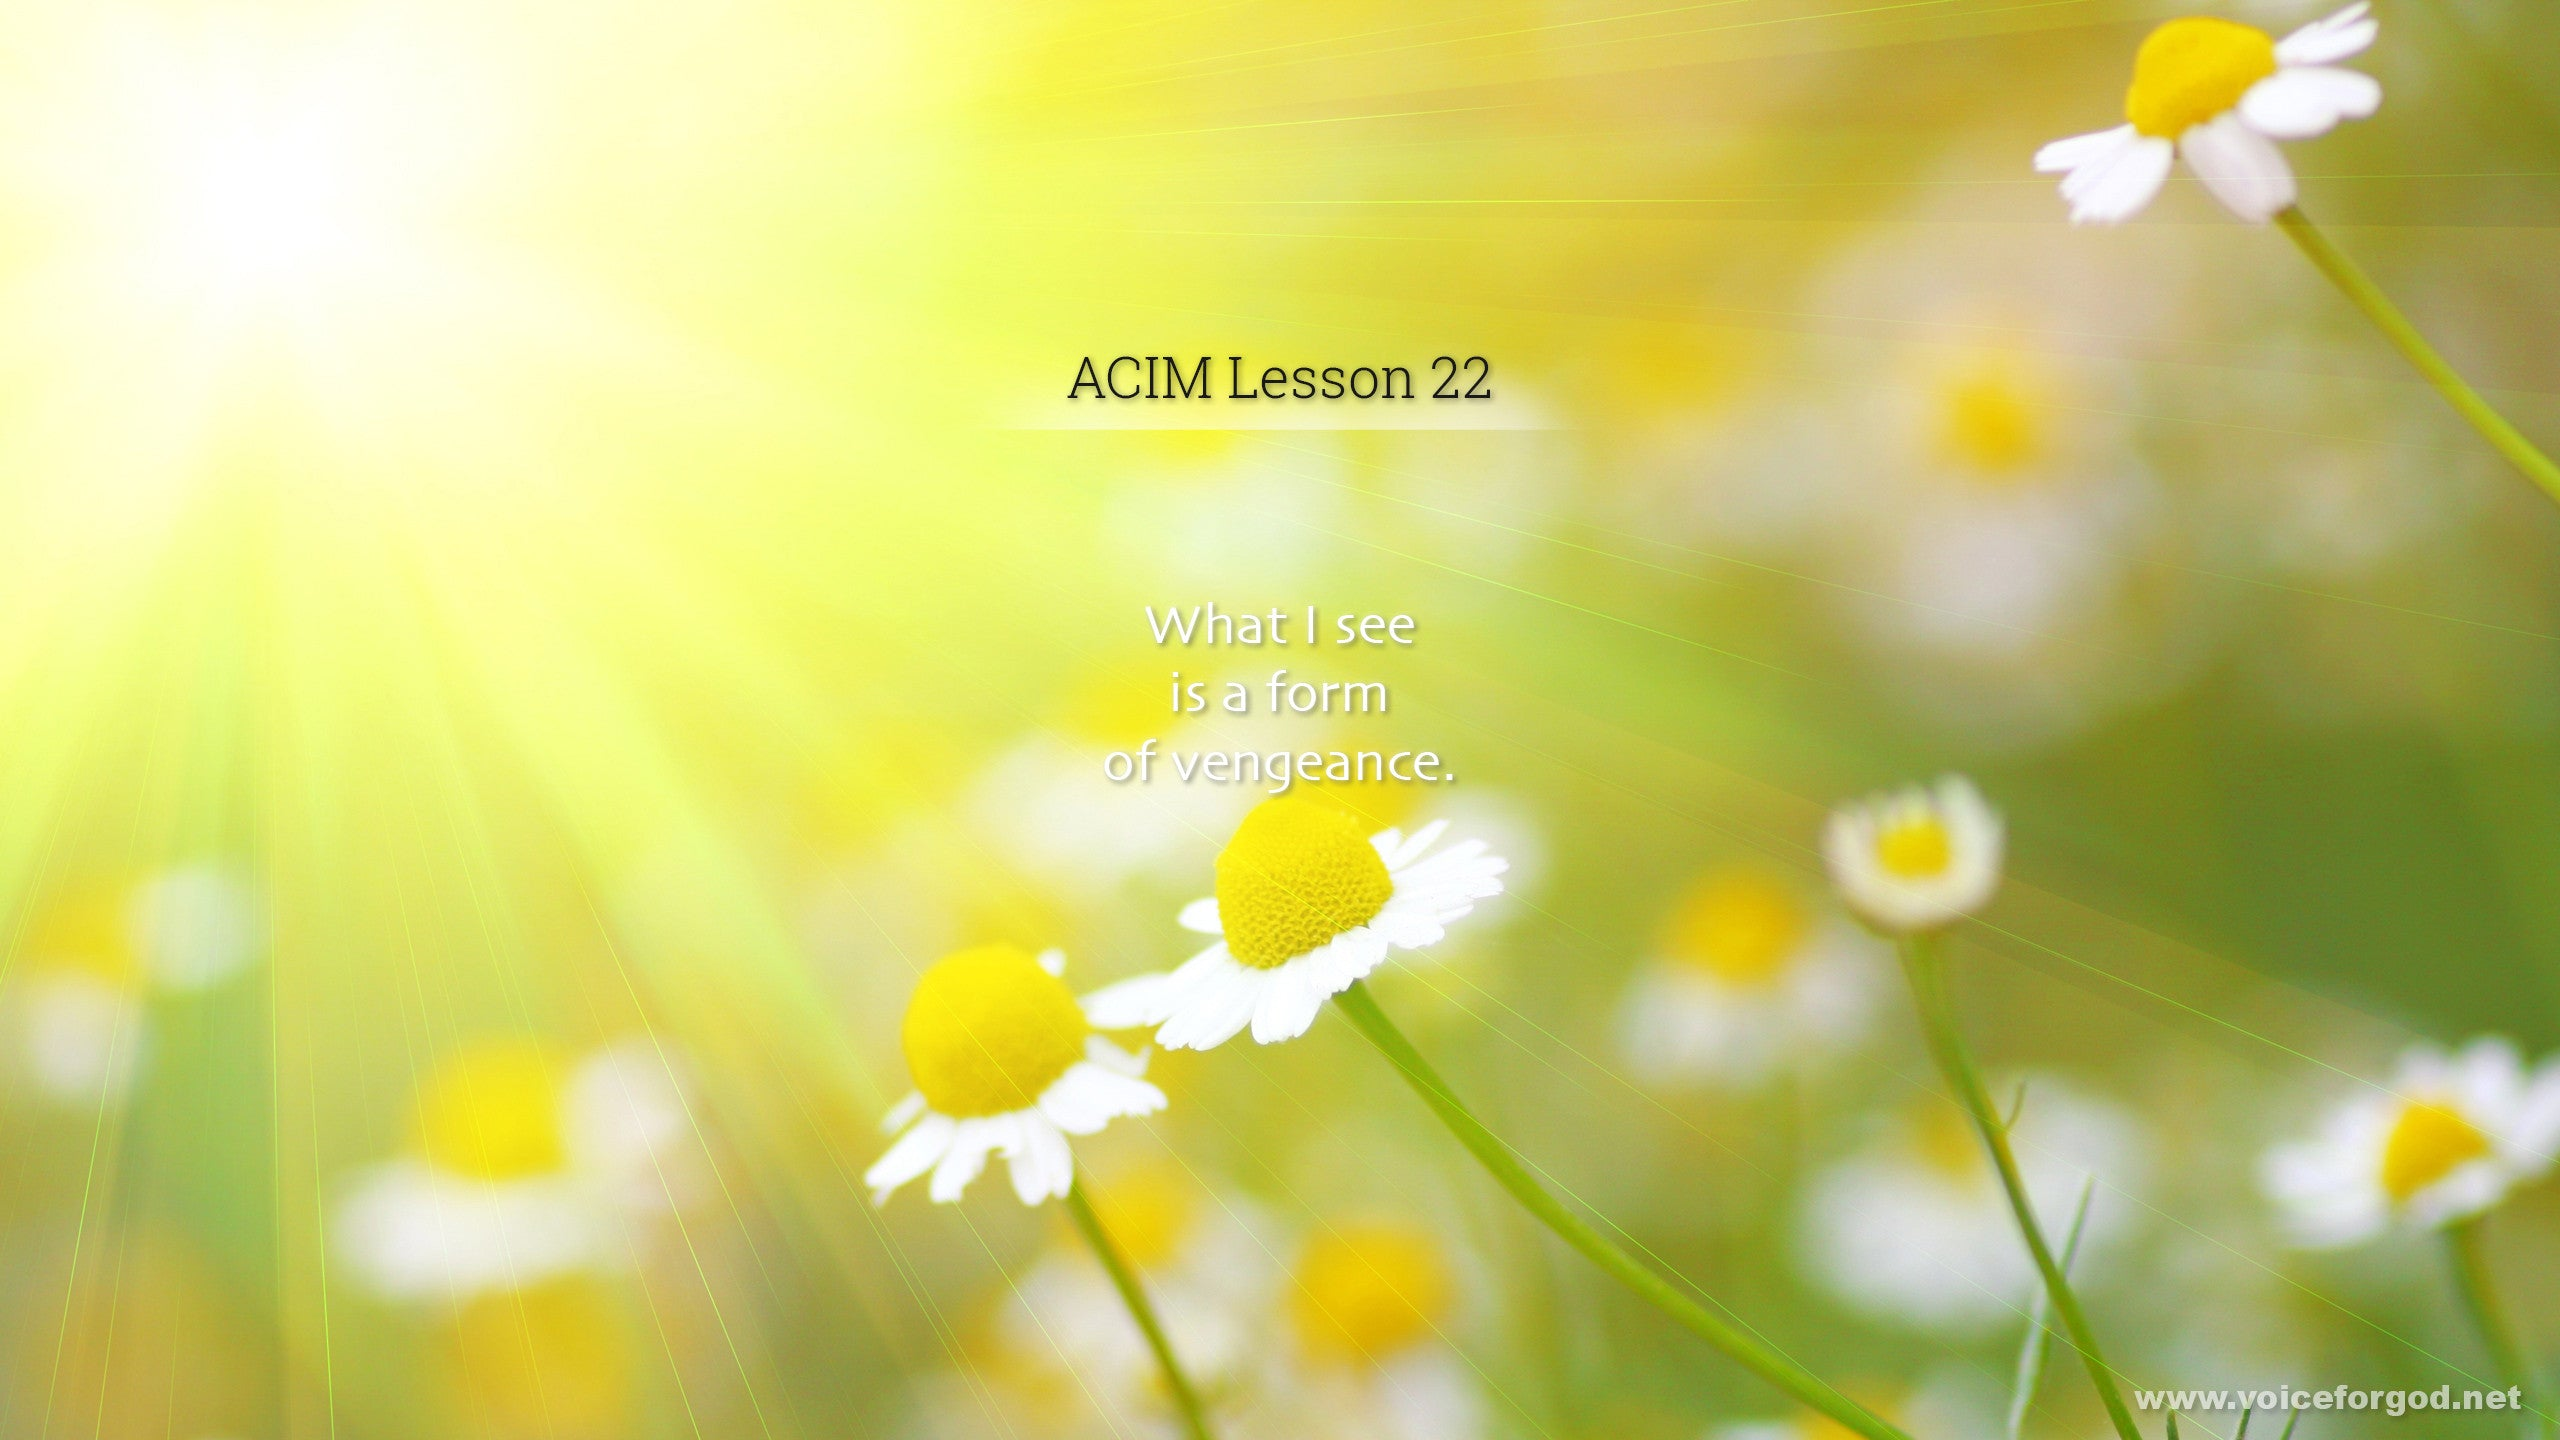 ACIM Lesson 22 - A Course in Miracles Workbook Lesson 22